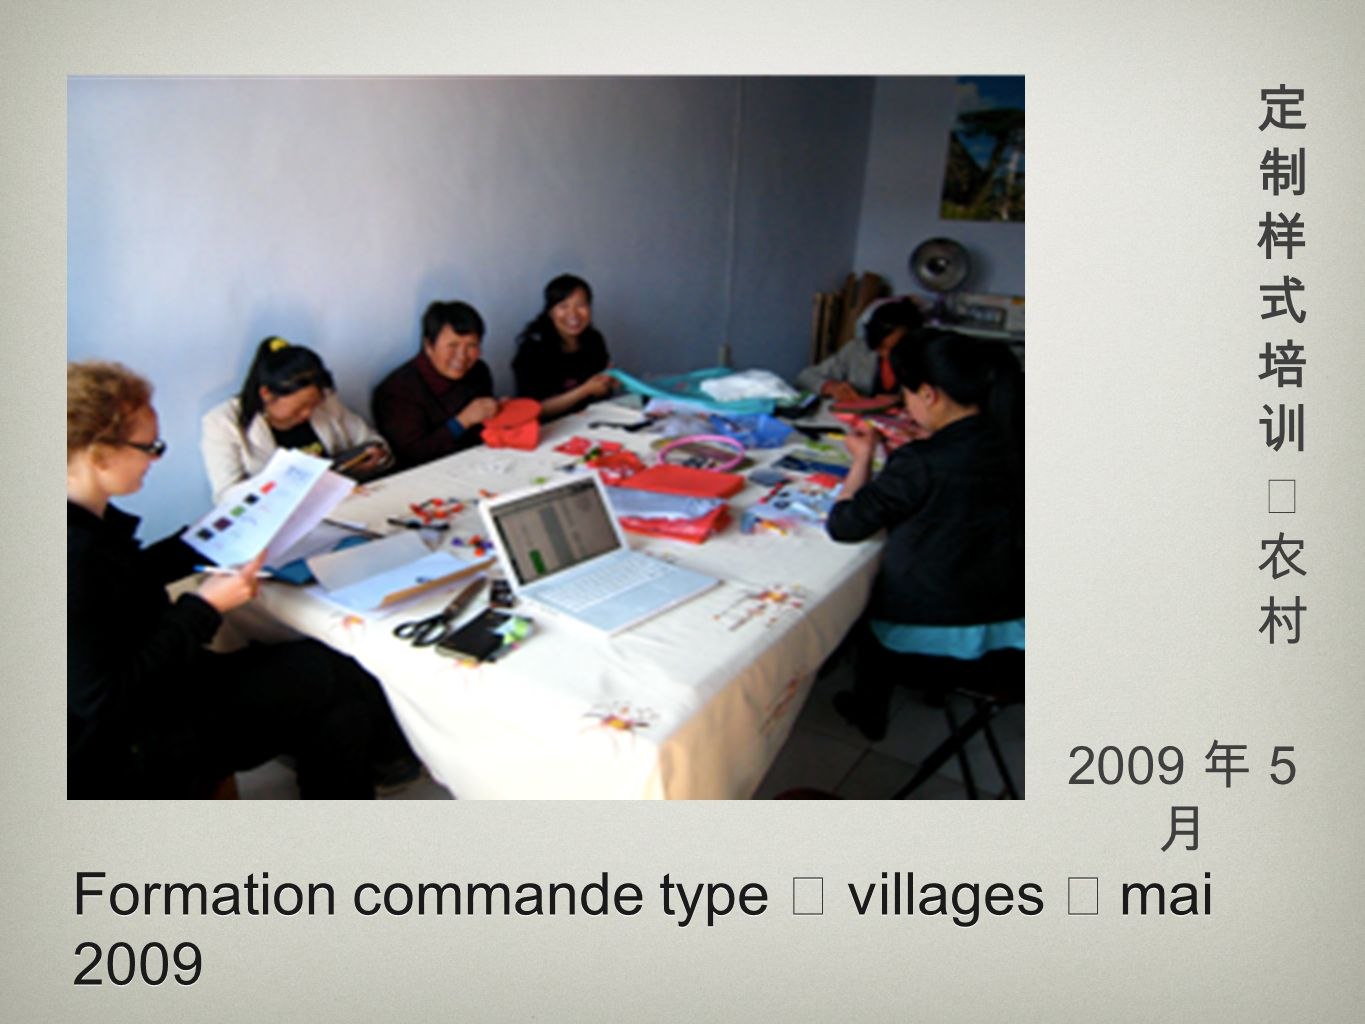 Formation commande type  villages  mai 2009